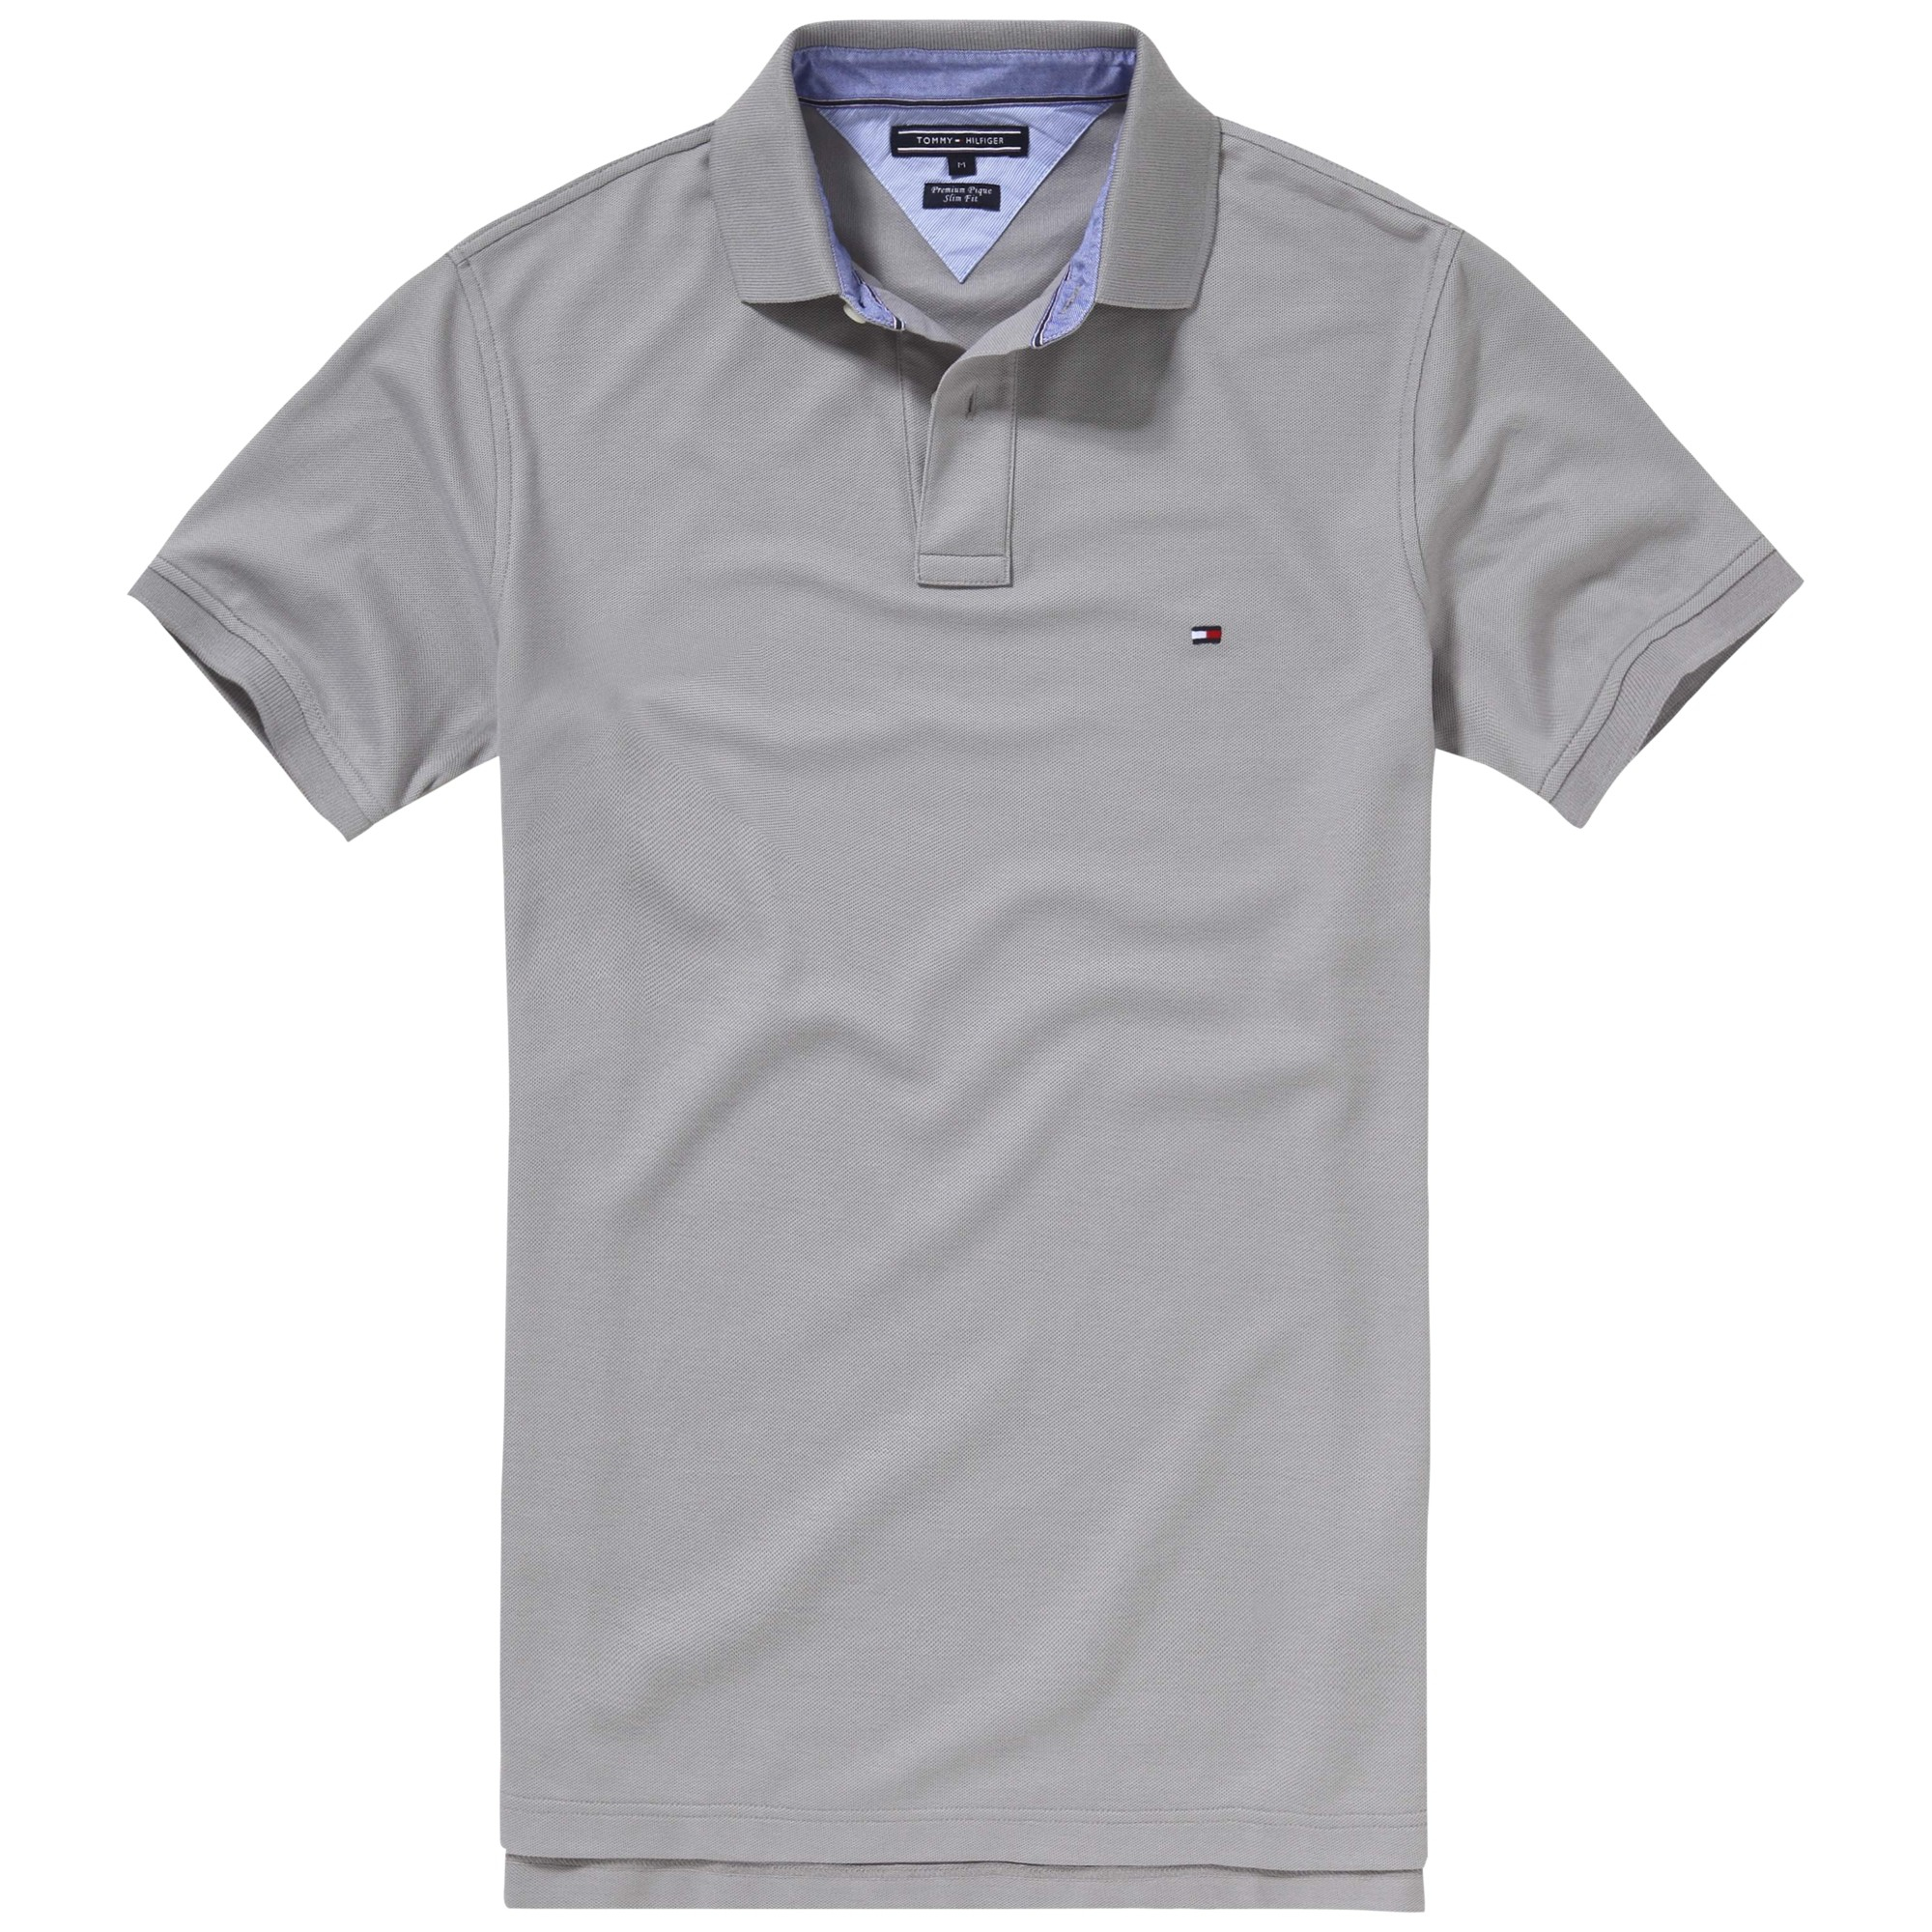 lyst tommy hilfiger performance polo shirt in gray for men. Black Bedroom Furniture Sets. Home Design Ideas